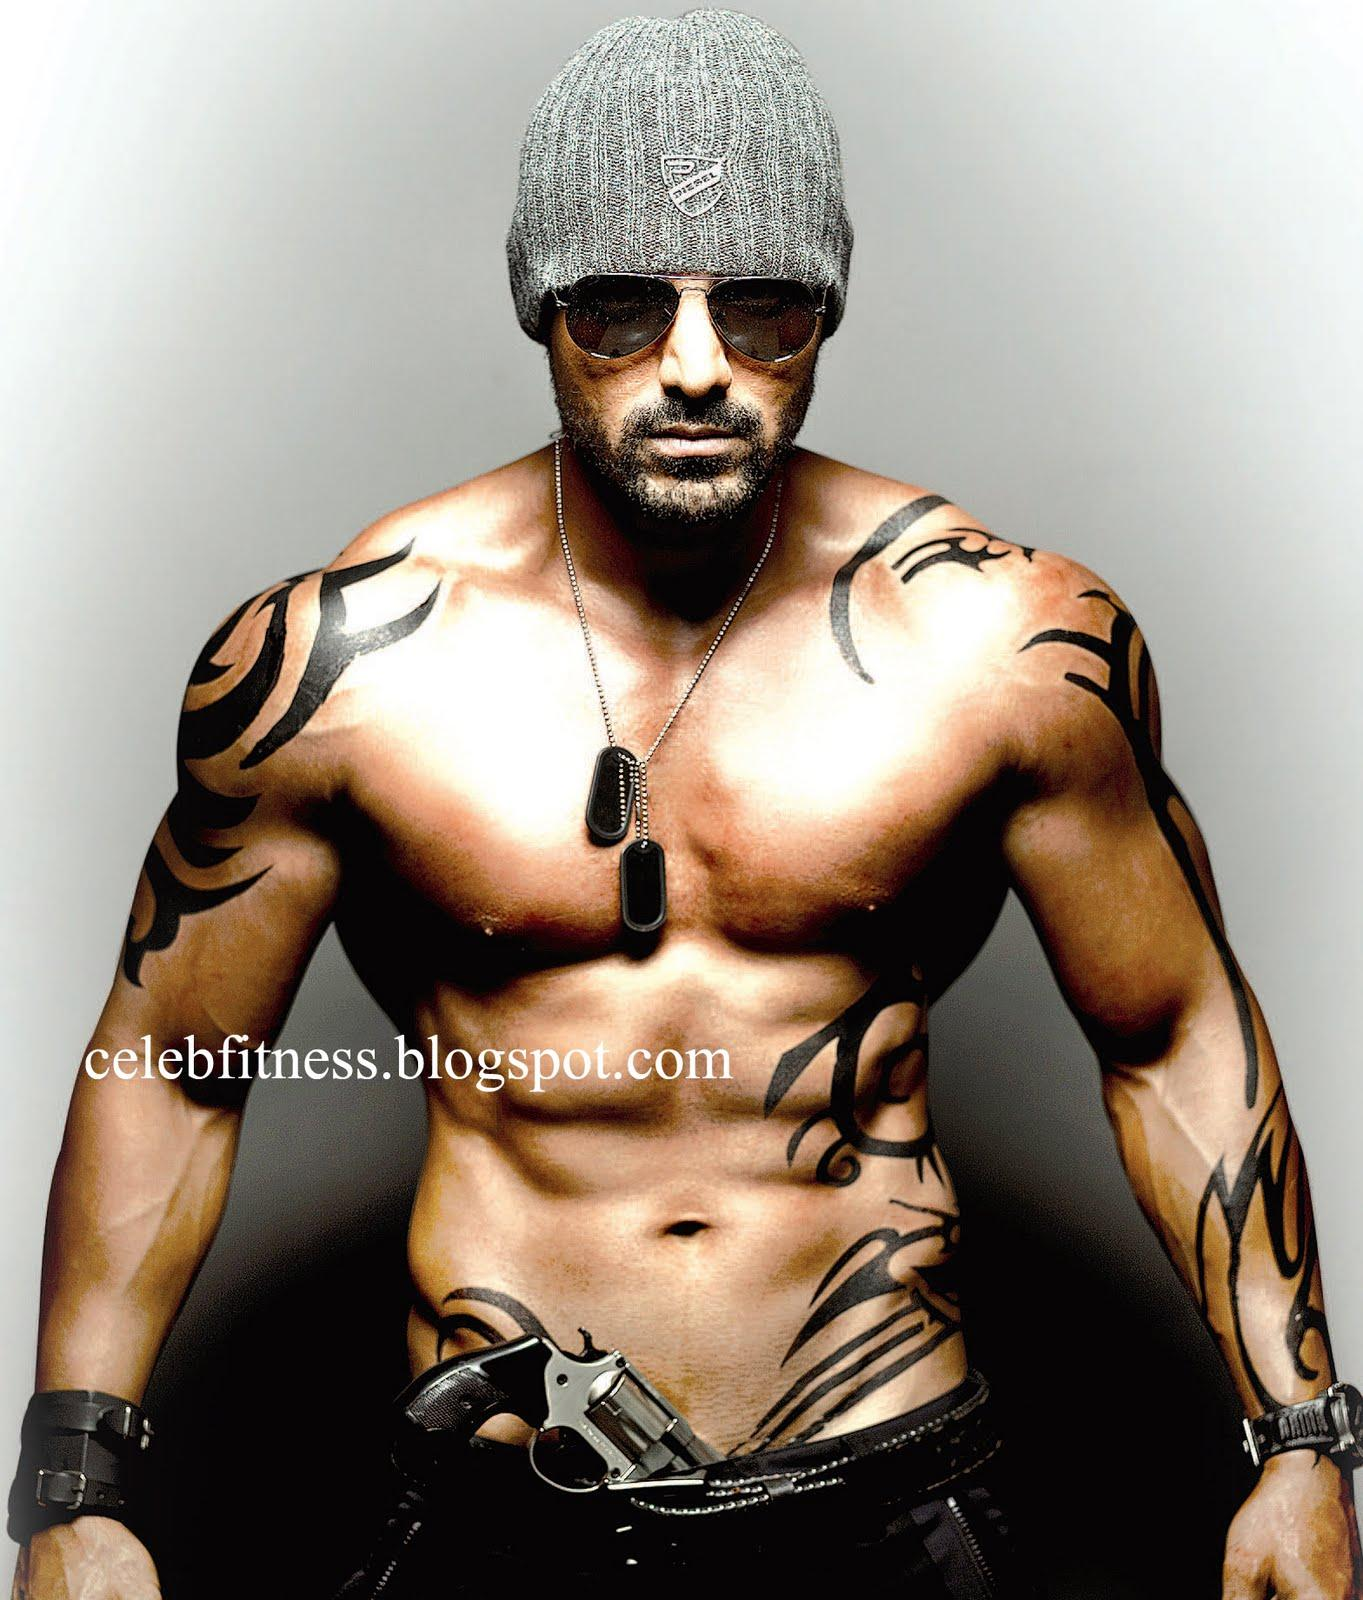 C:\Users\user\Desktop\Reacho\pics\john-abraham-body-wallpaper-hd-210.jpg